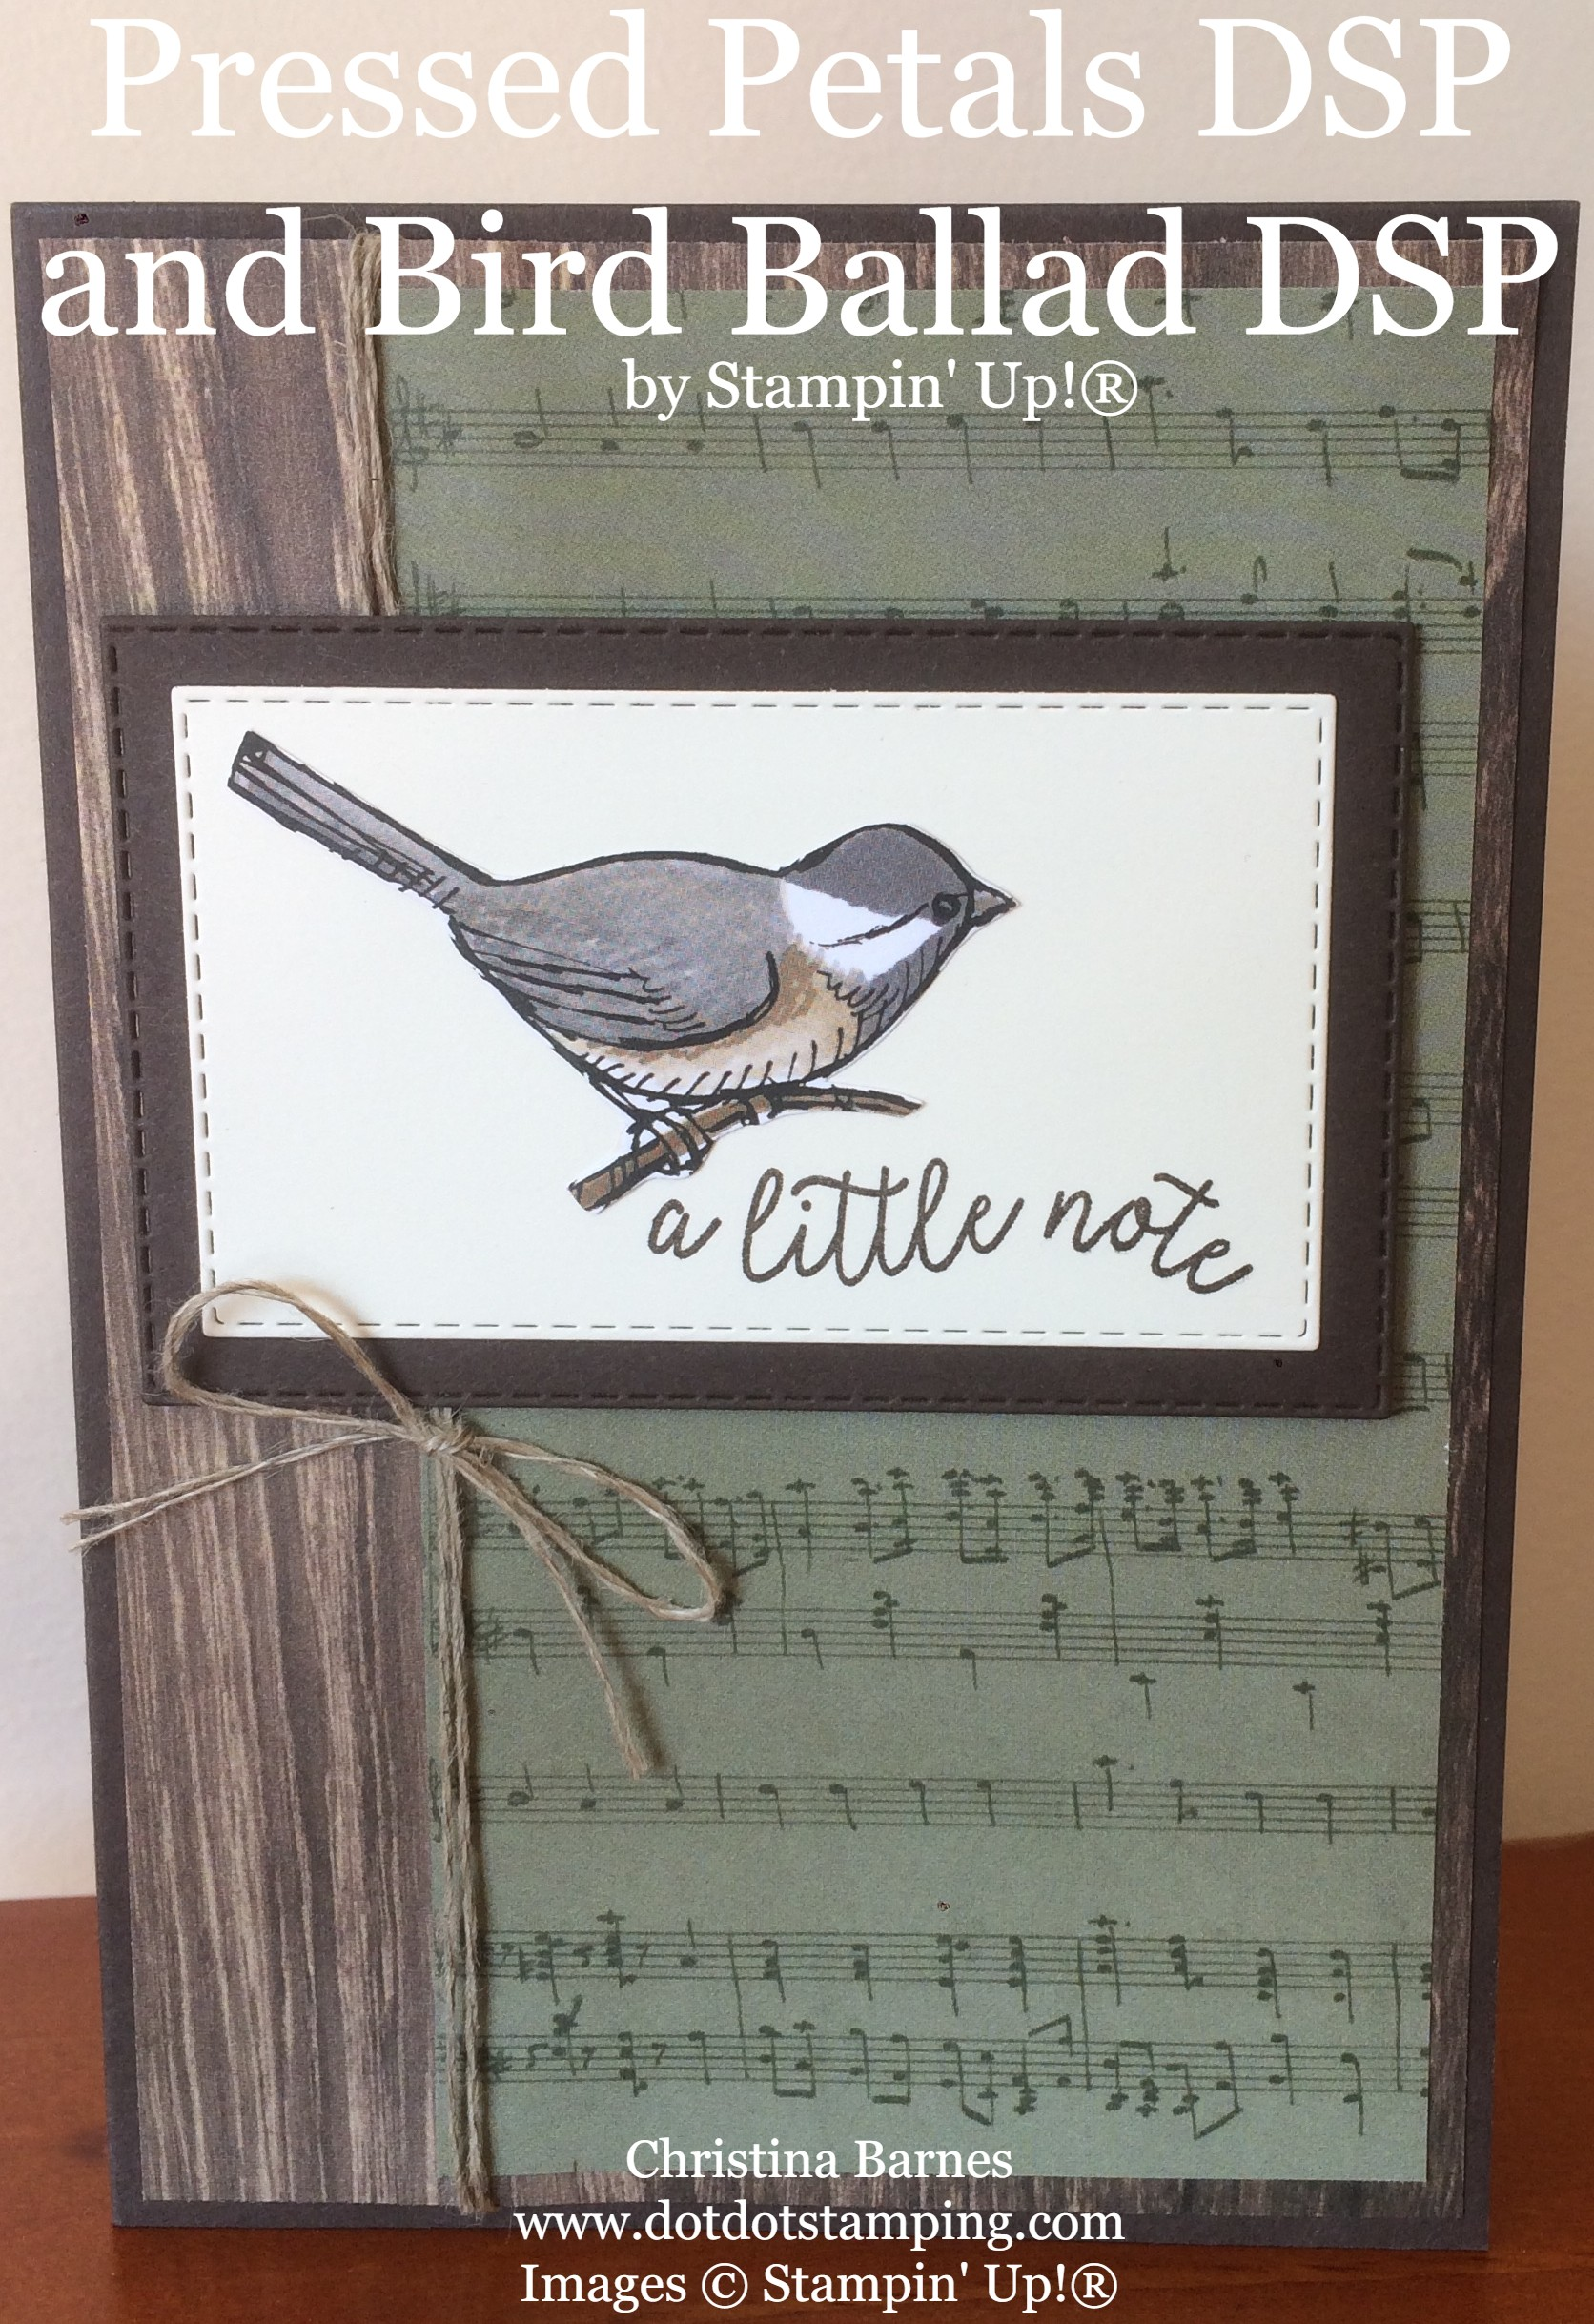 Pressed Petals Specialty Designer Series Paper and Bird Ballad DSP Card Stampin' Up! 2019 Annual Catalogue Christina Barnes Dot Dot Stamping